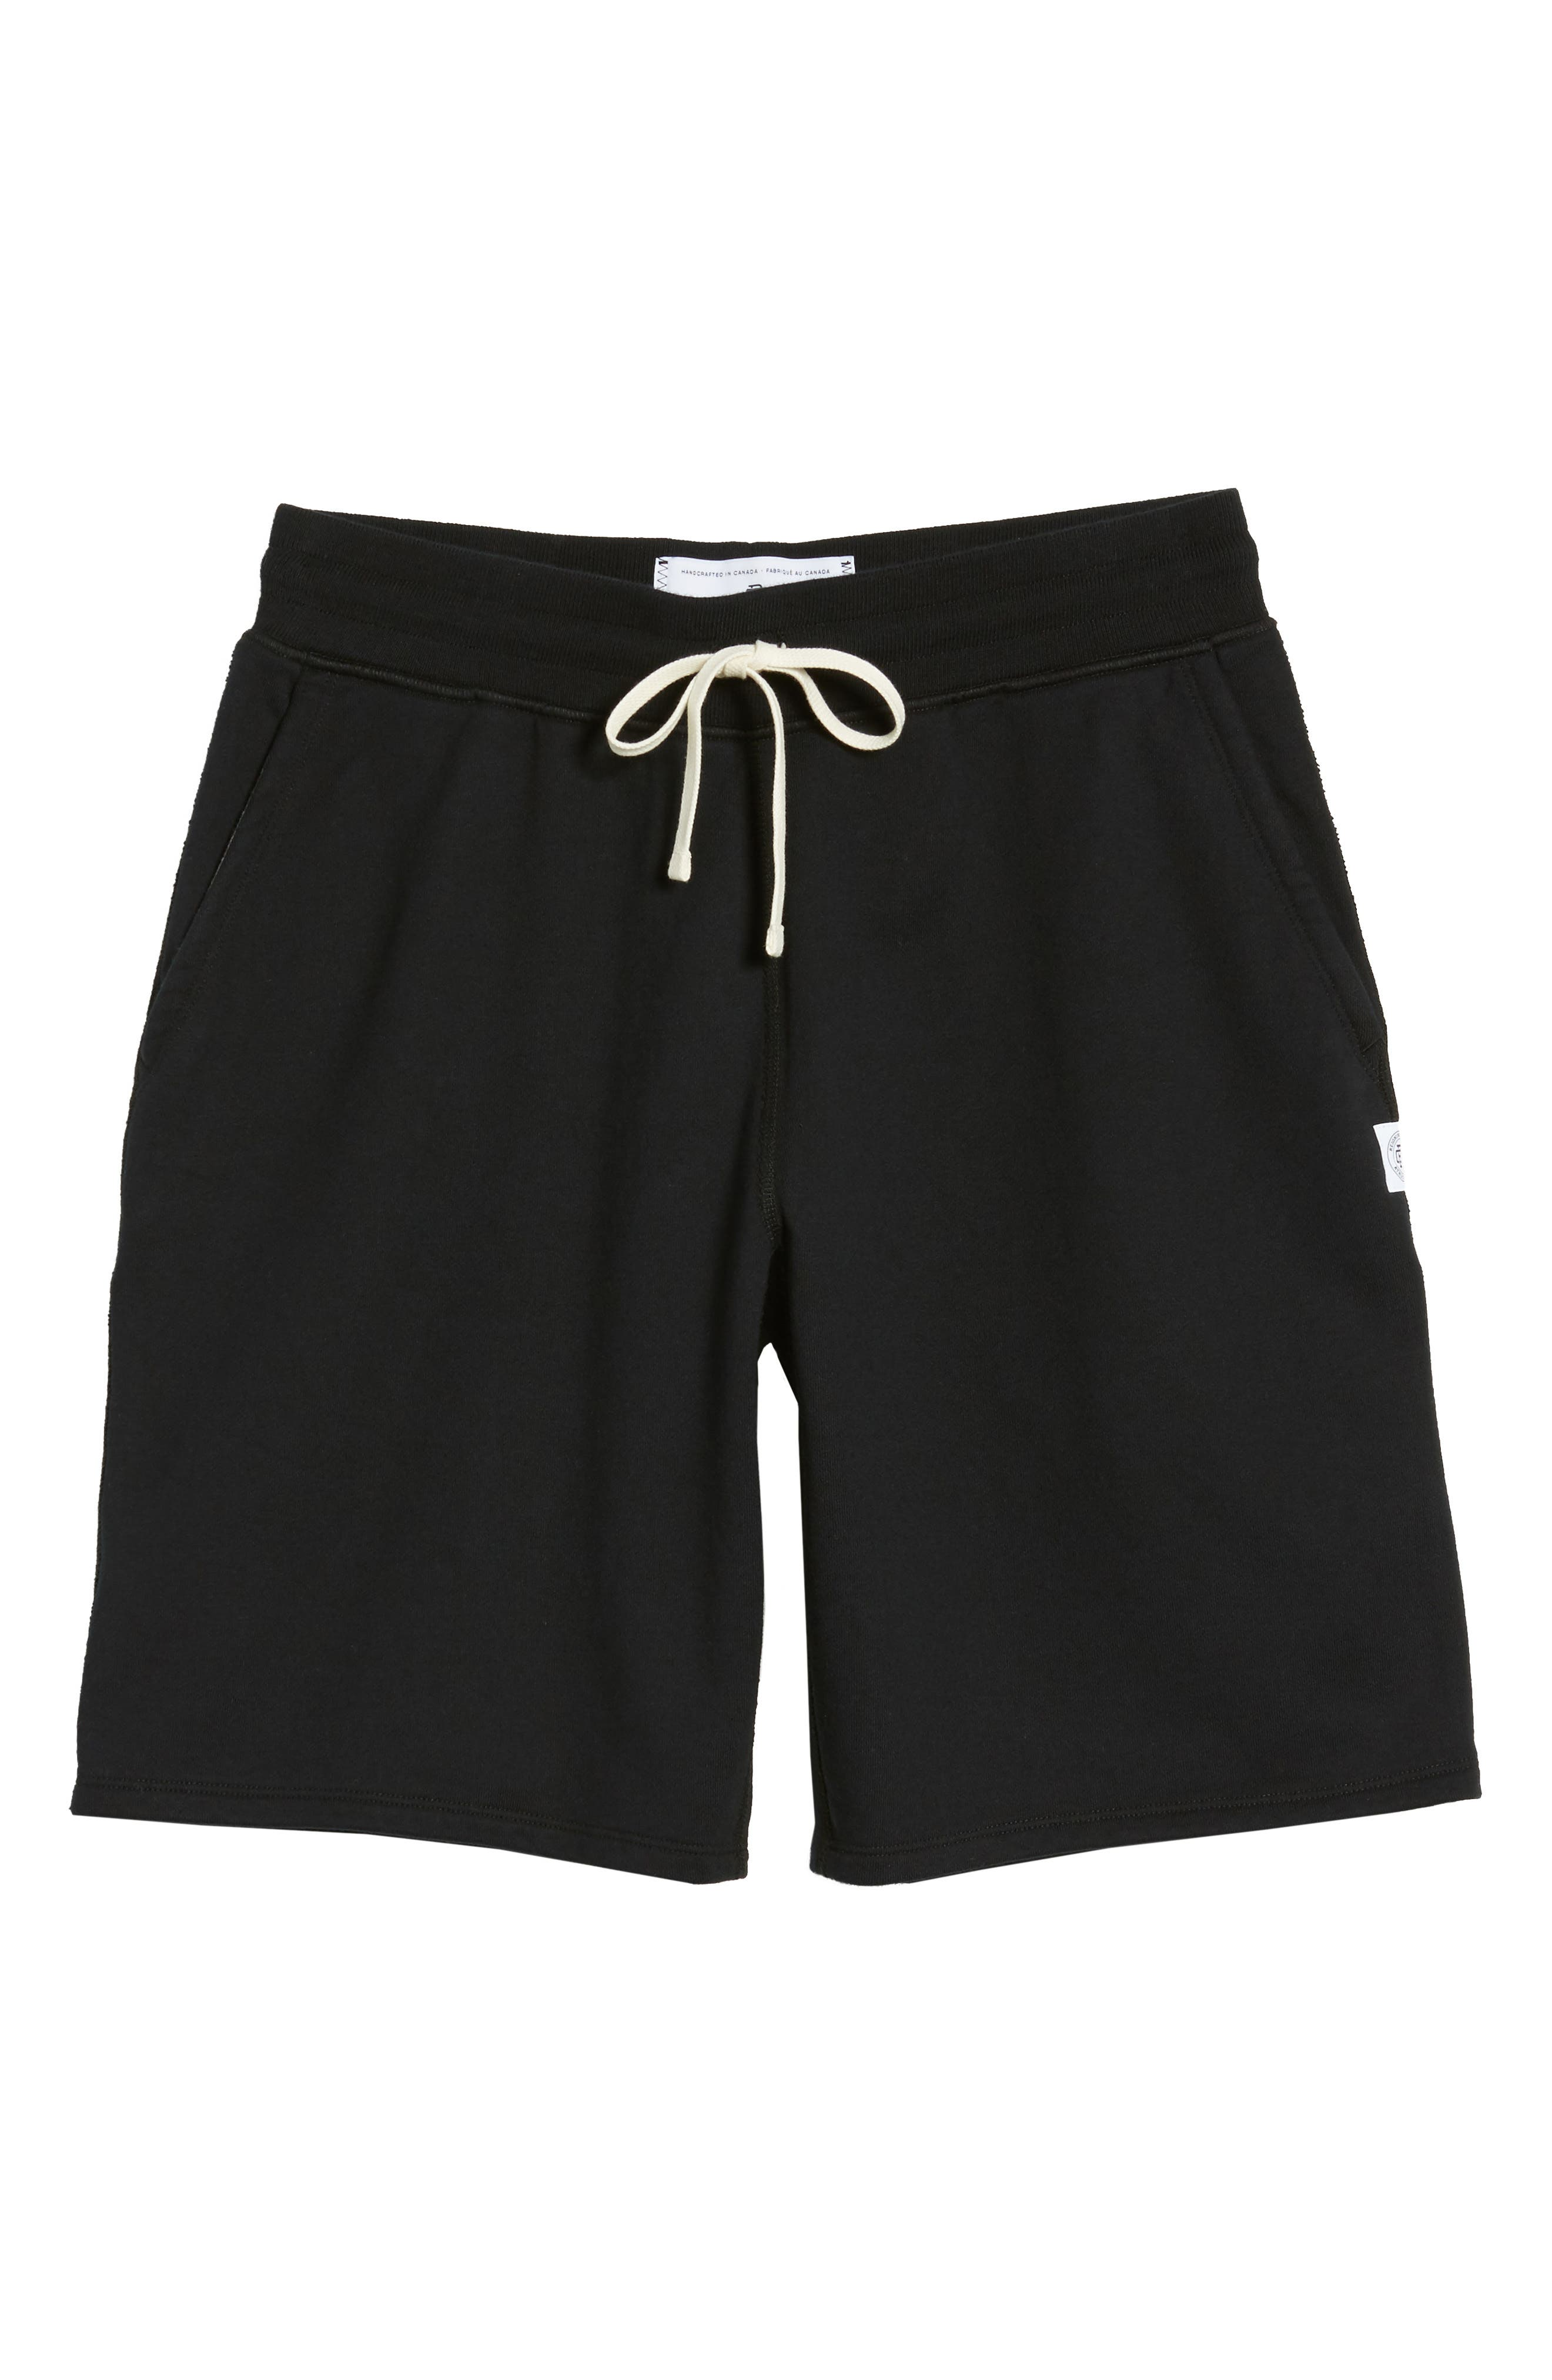 Terry Cotton Sweat Shorts,                             Alternate thumbnail 2, color,                             001